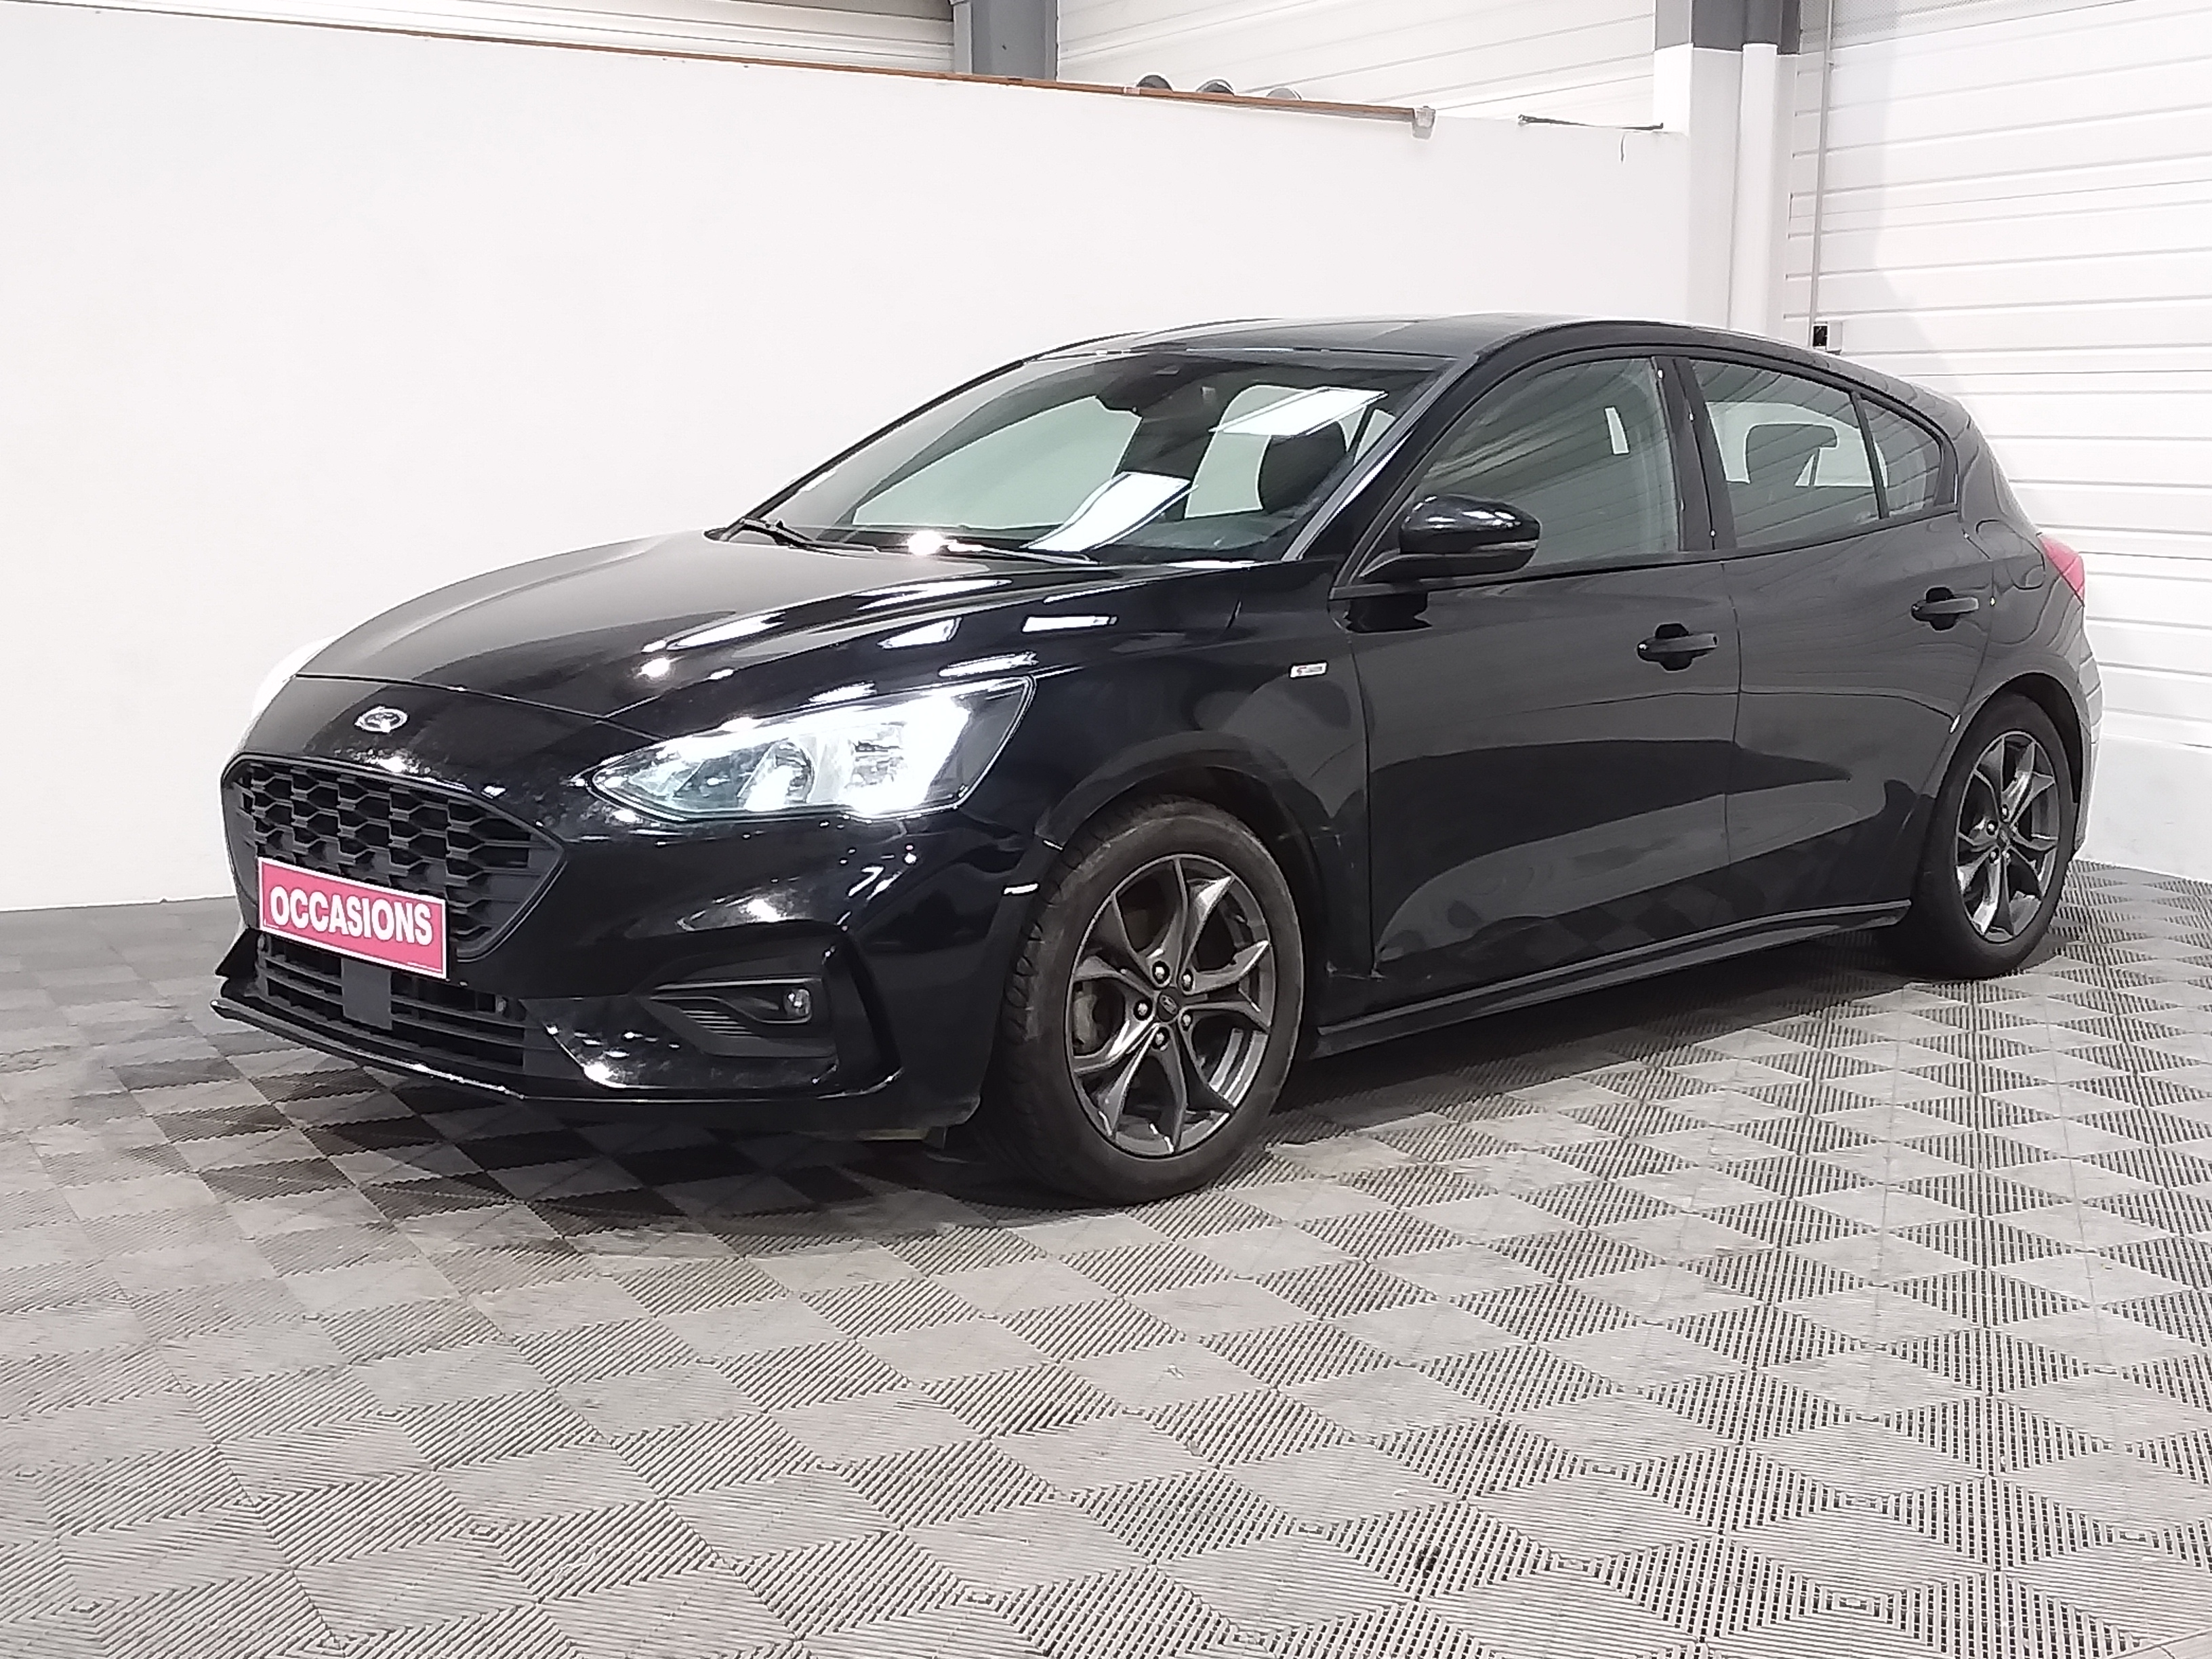 FORD FOCUS 1.0 Ecoboost 125 S&S BVM6 ST Line d'occasion